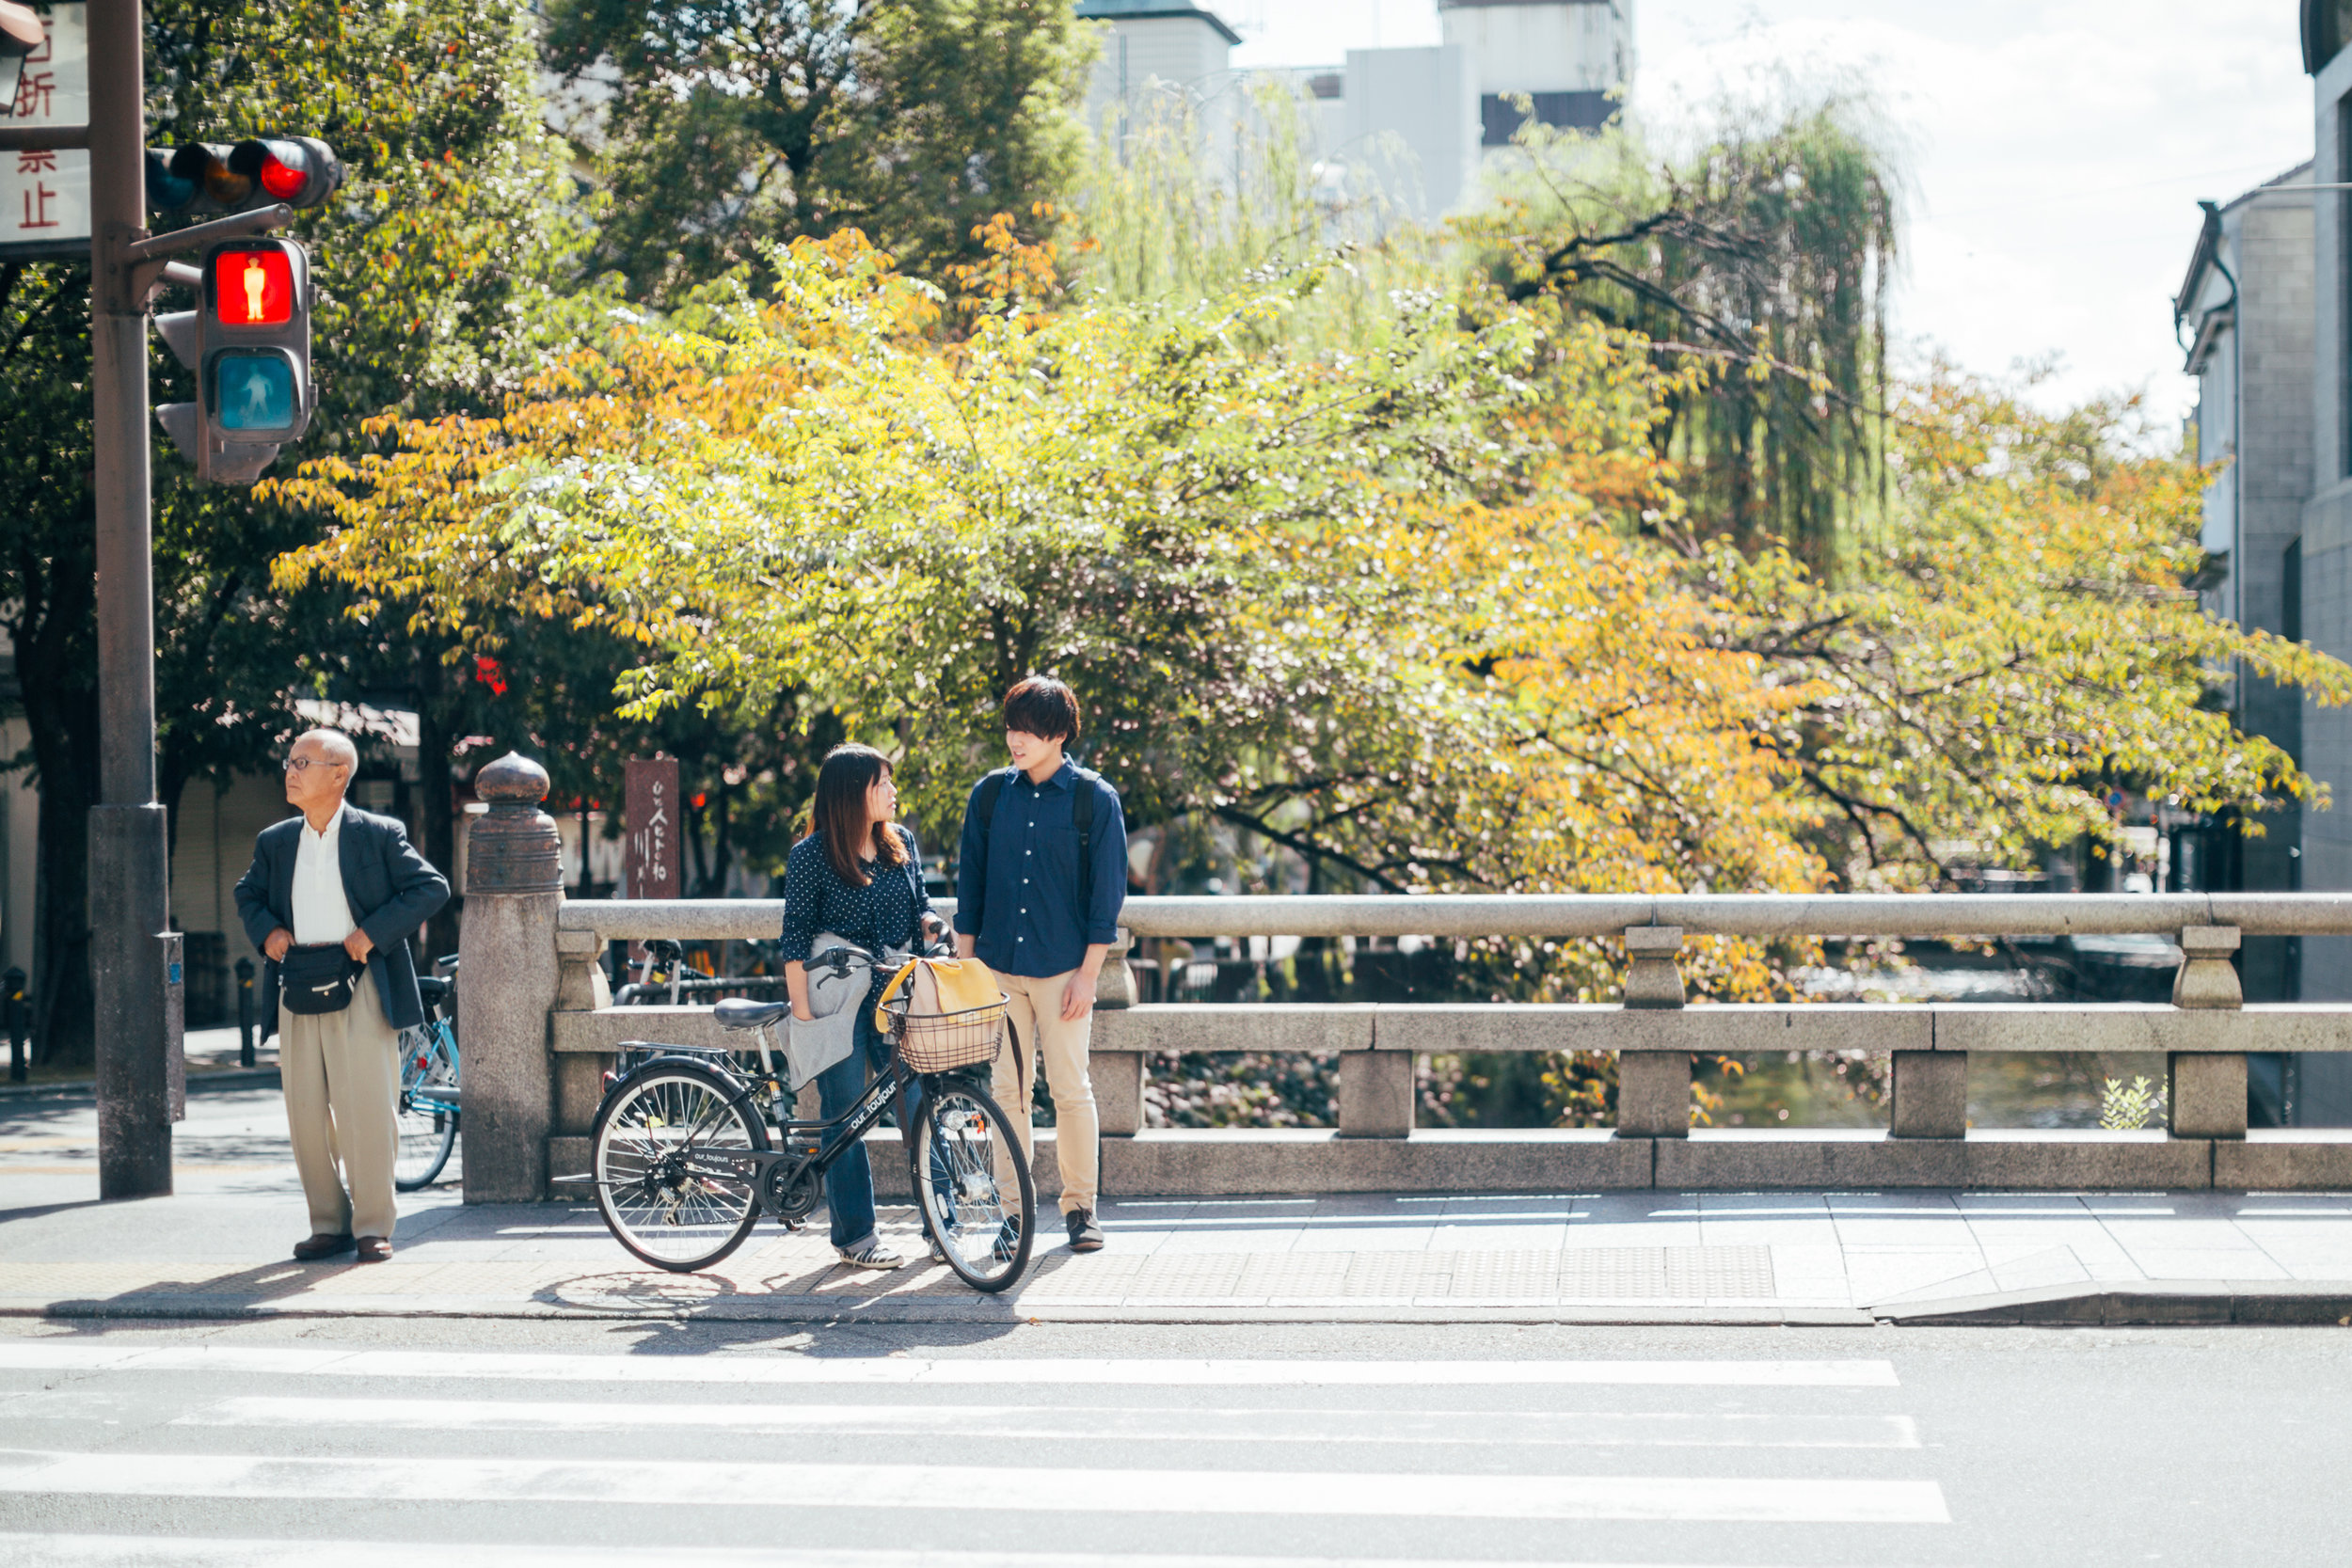 Bikes are plentiful in Kyoto. The flat landscape of the city and the well maintained roads are probably the major factors in this.